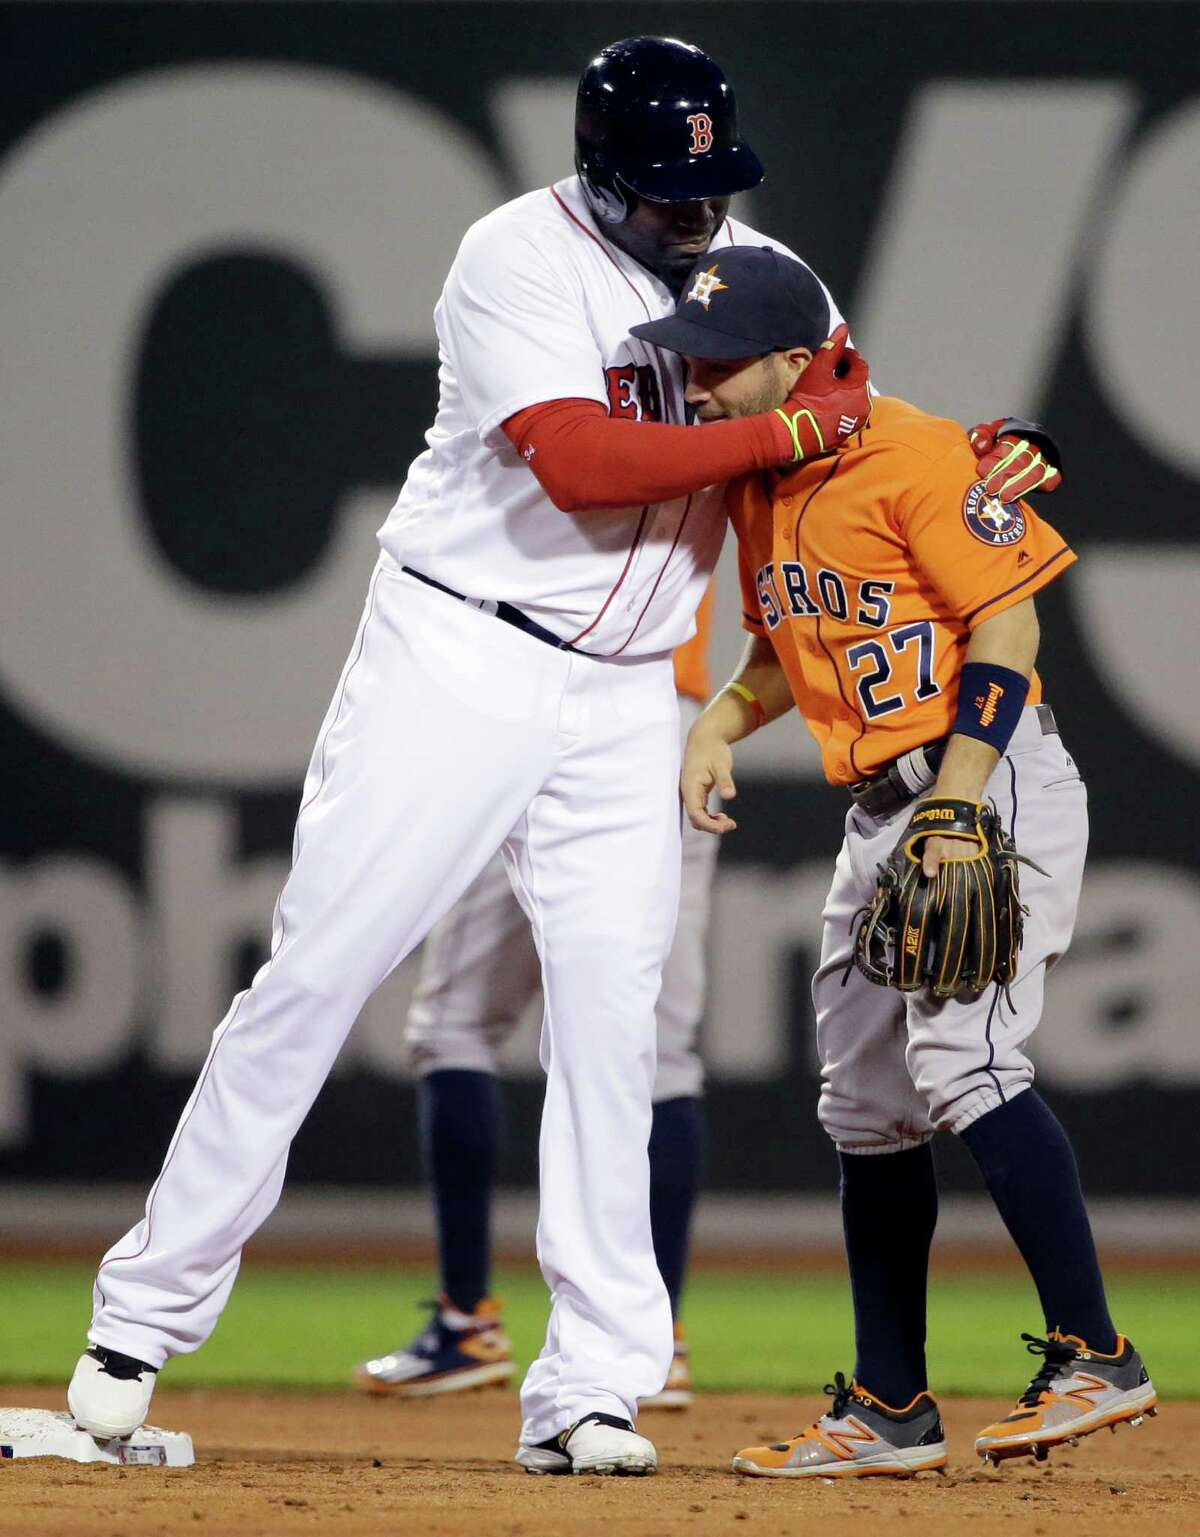 Who's your Papi? Red Sox designated hitter David Ortiz hugs Astros second baseman Jose Altuve, right, after doubling to lead off the bottom of the third inning Thursday night.